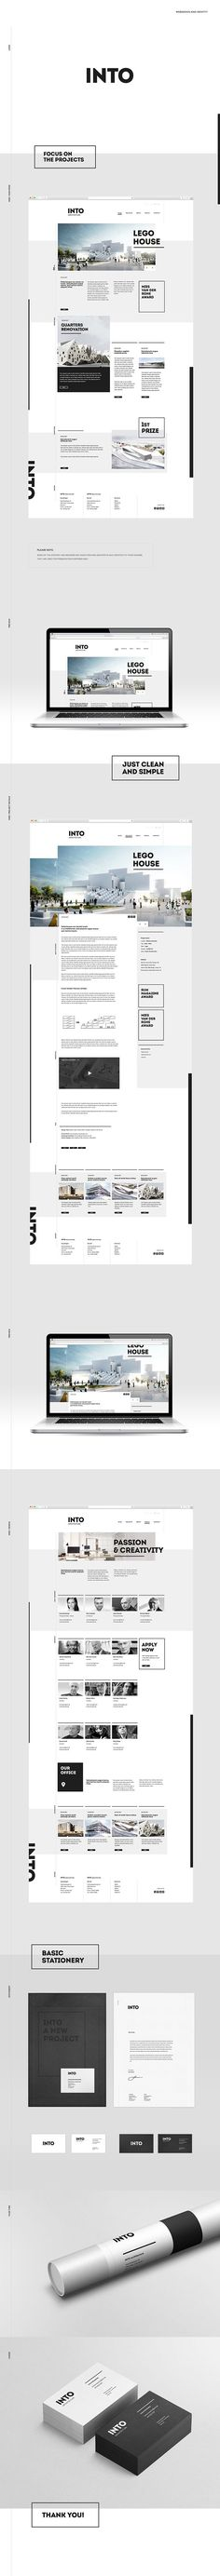 INTO | architecture office concept on Web Design Served